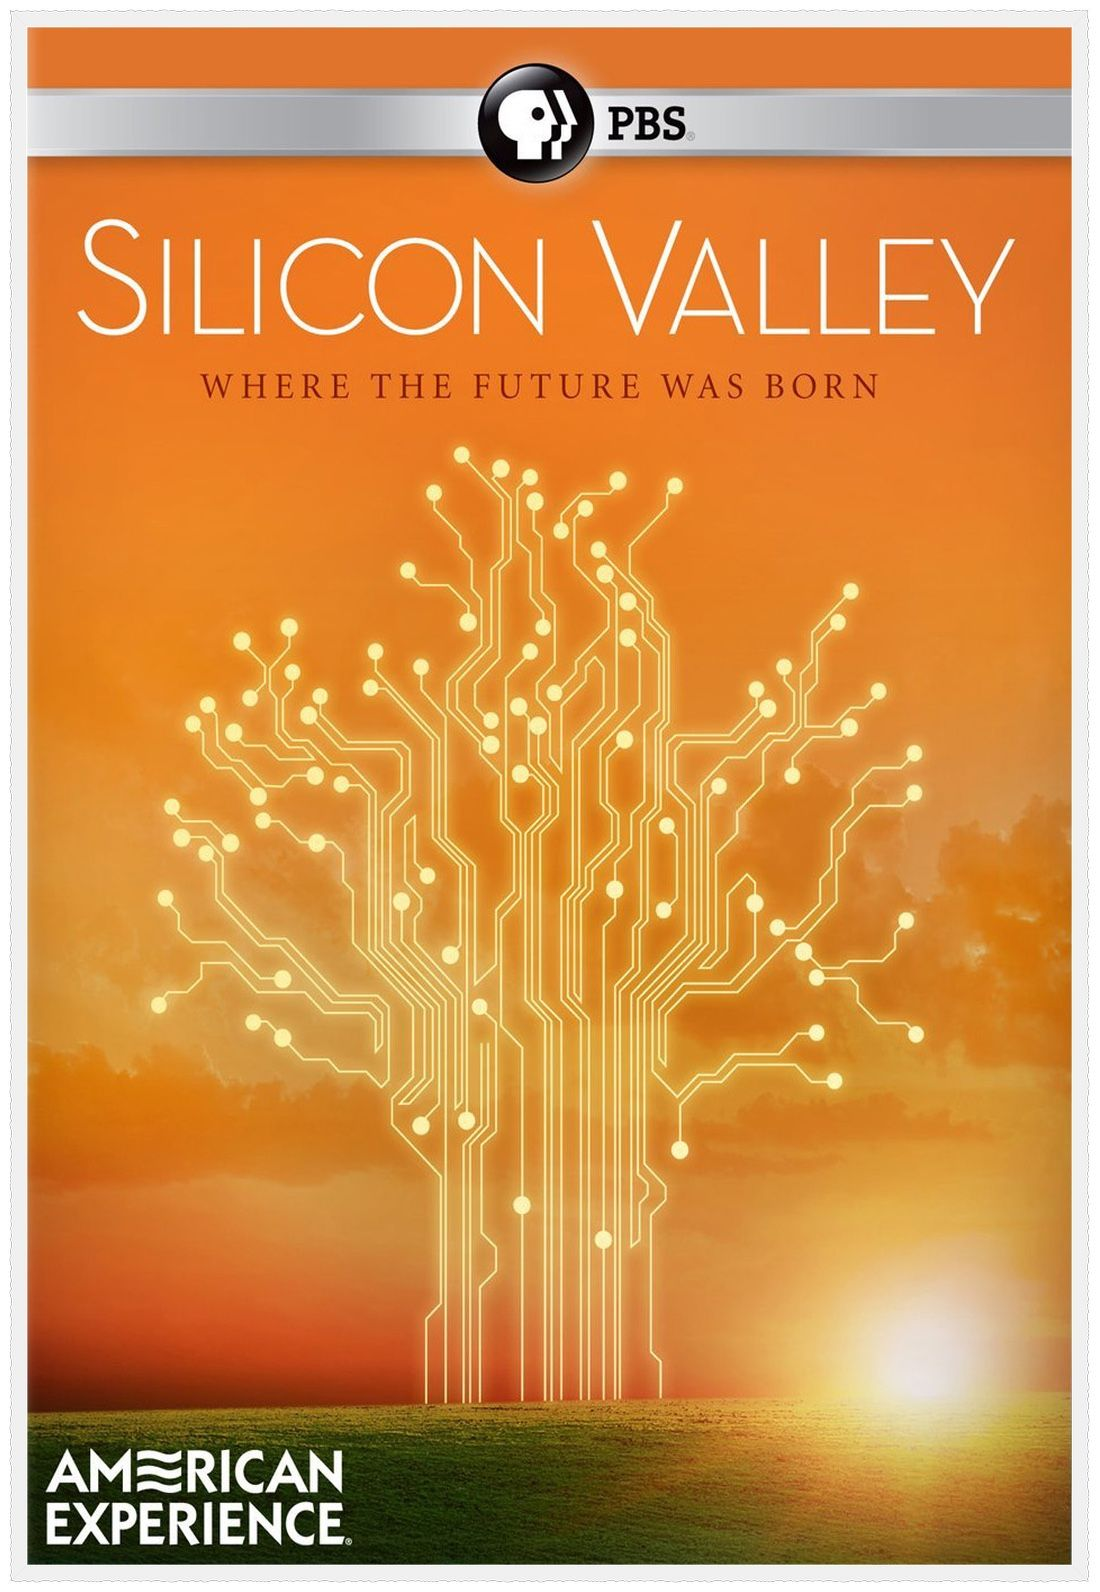 Silicon Valley is a nickname for the southern portion of